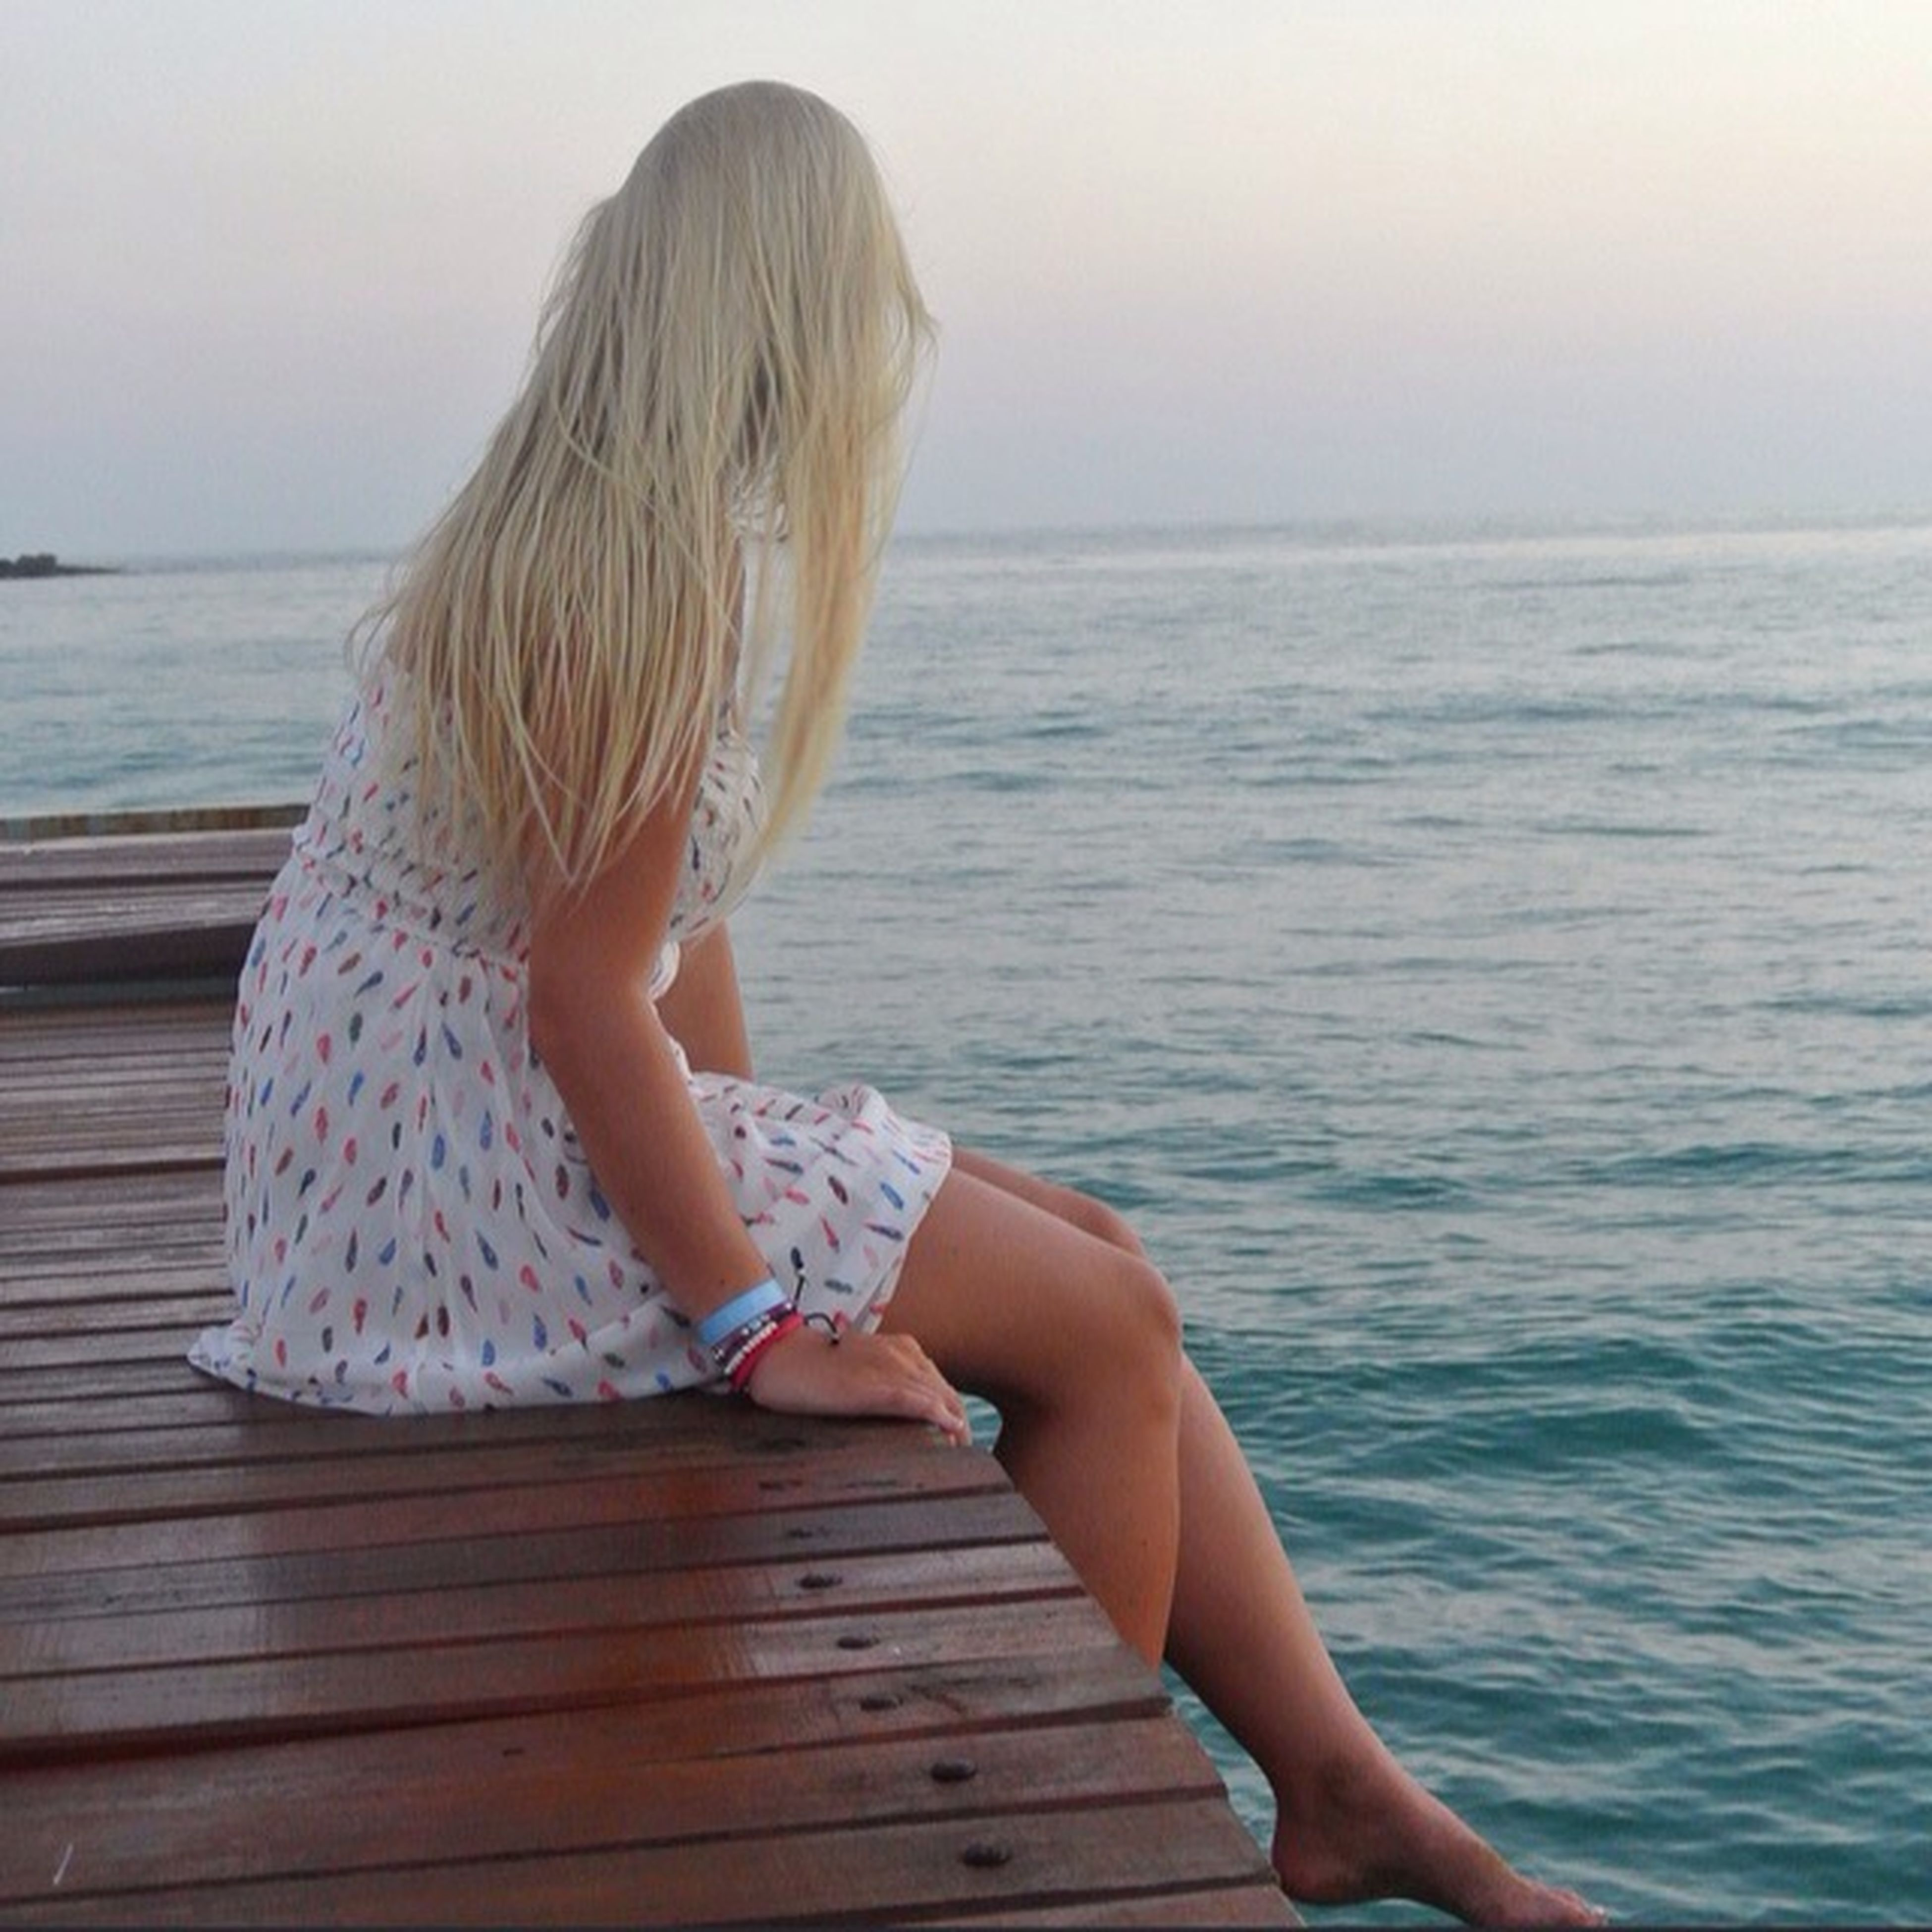 sea, water, horizon over water, lifestyles, leisure activity, young women, person, relaxation, tranquility, long hair, beach, rear view, tranquil scene, scenics, young adult, vacations, beauty in nature, sky